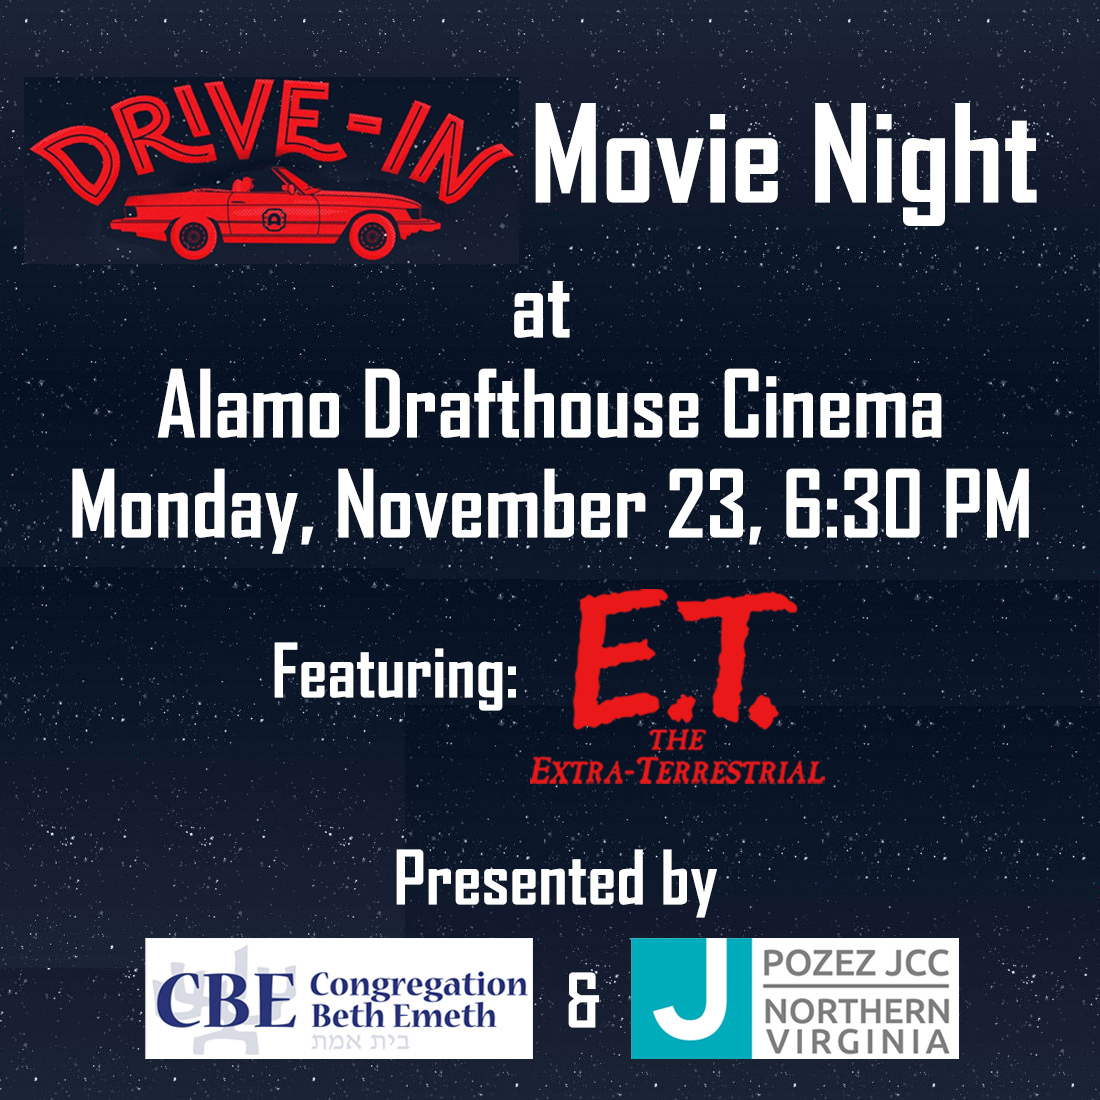 Drive-In Movie Night at the Alamo Drafthouse Cinema Presented by Congregation Beth Emeth and the Pozez JCC